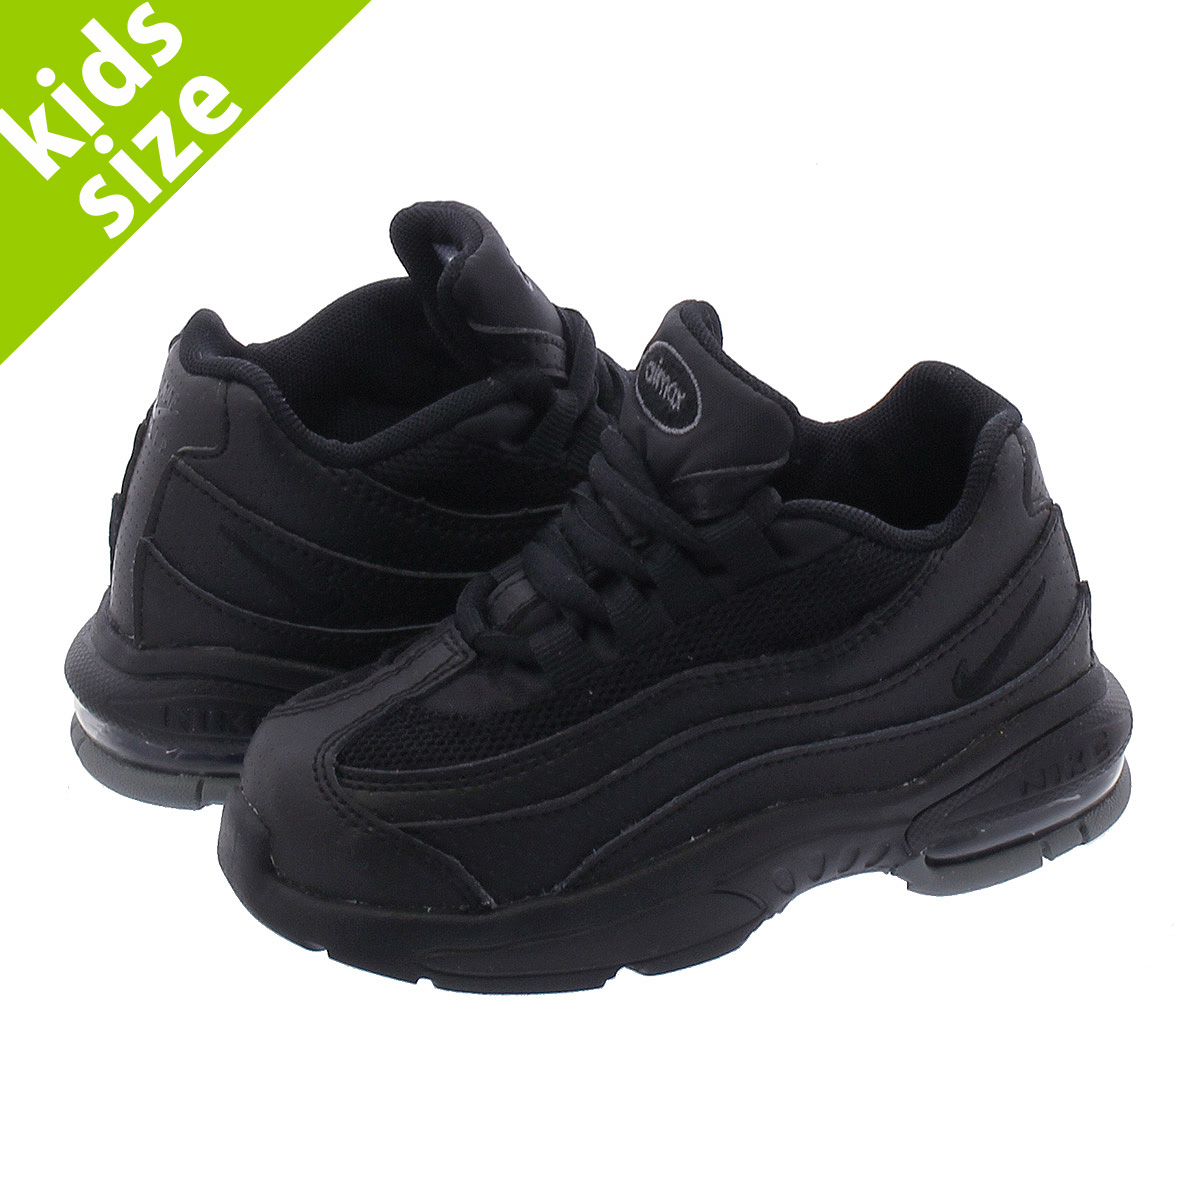 uk availability 4b67c 98191 NIKE AIR MAX 95 TD Kie Ney AMAX 95 TD BLACK/DARK GREY/COOL GREY 905,462-019